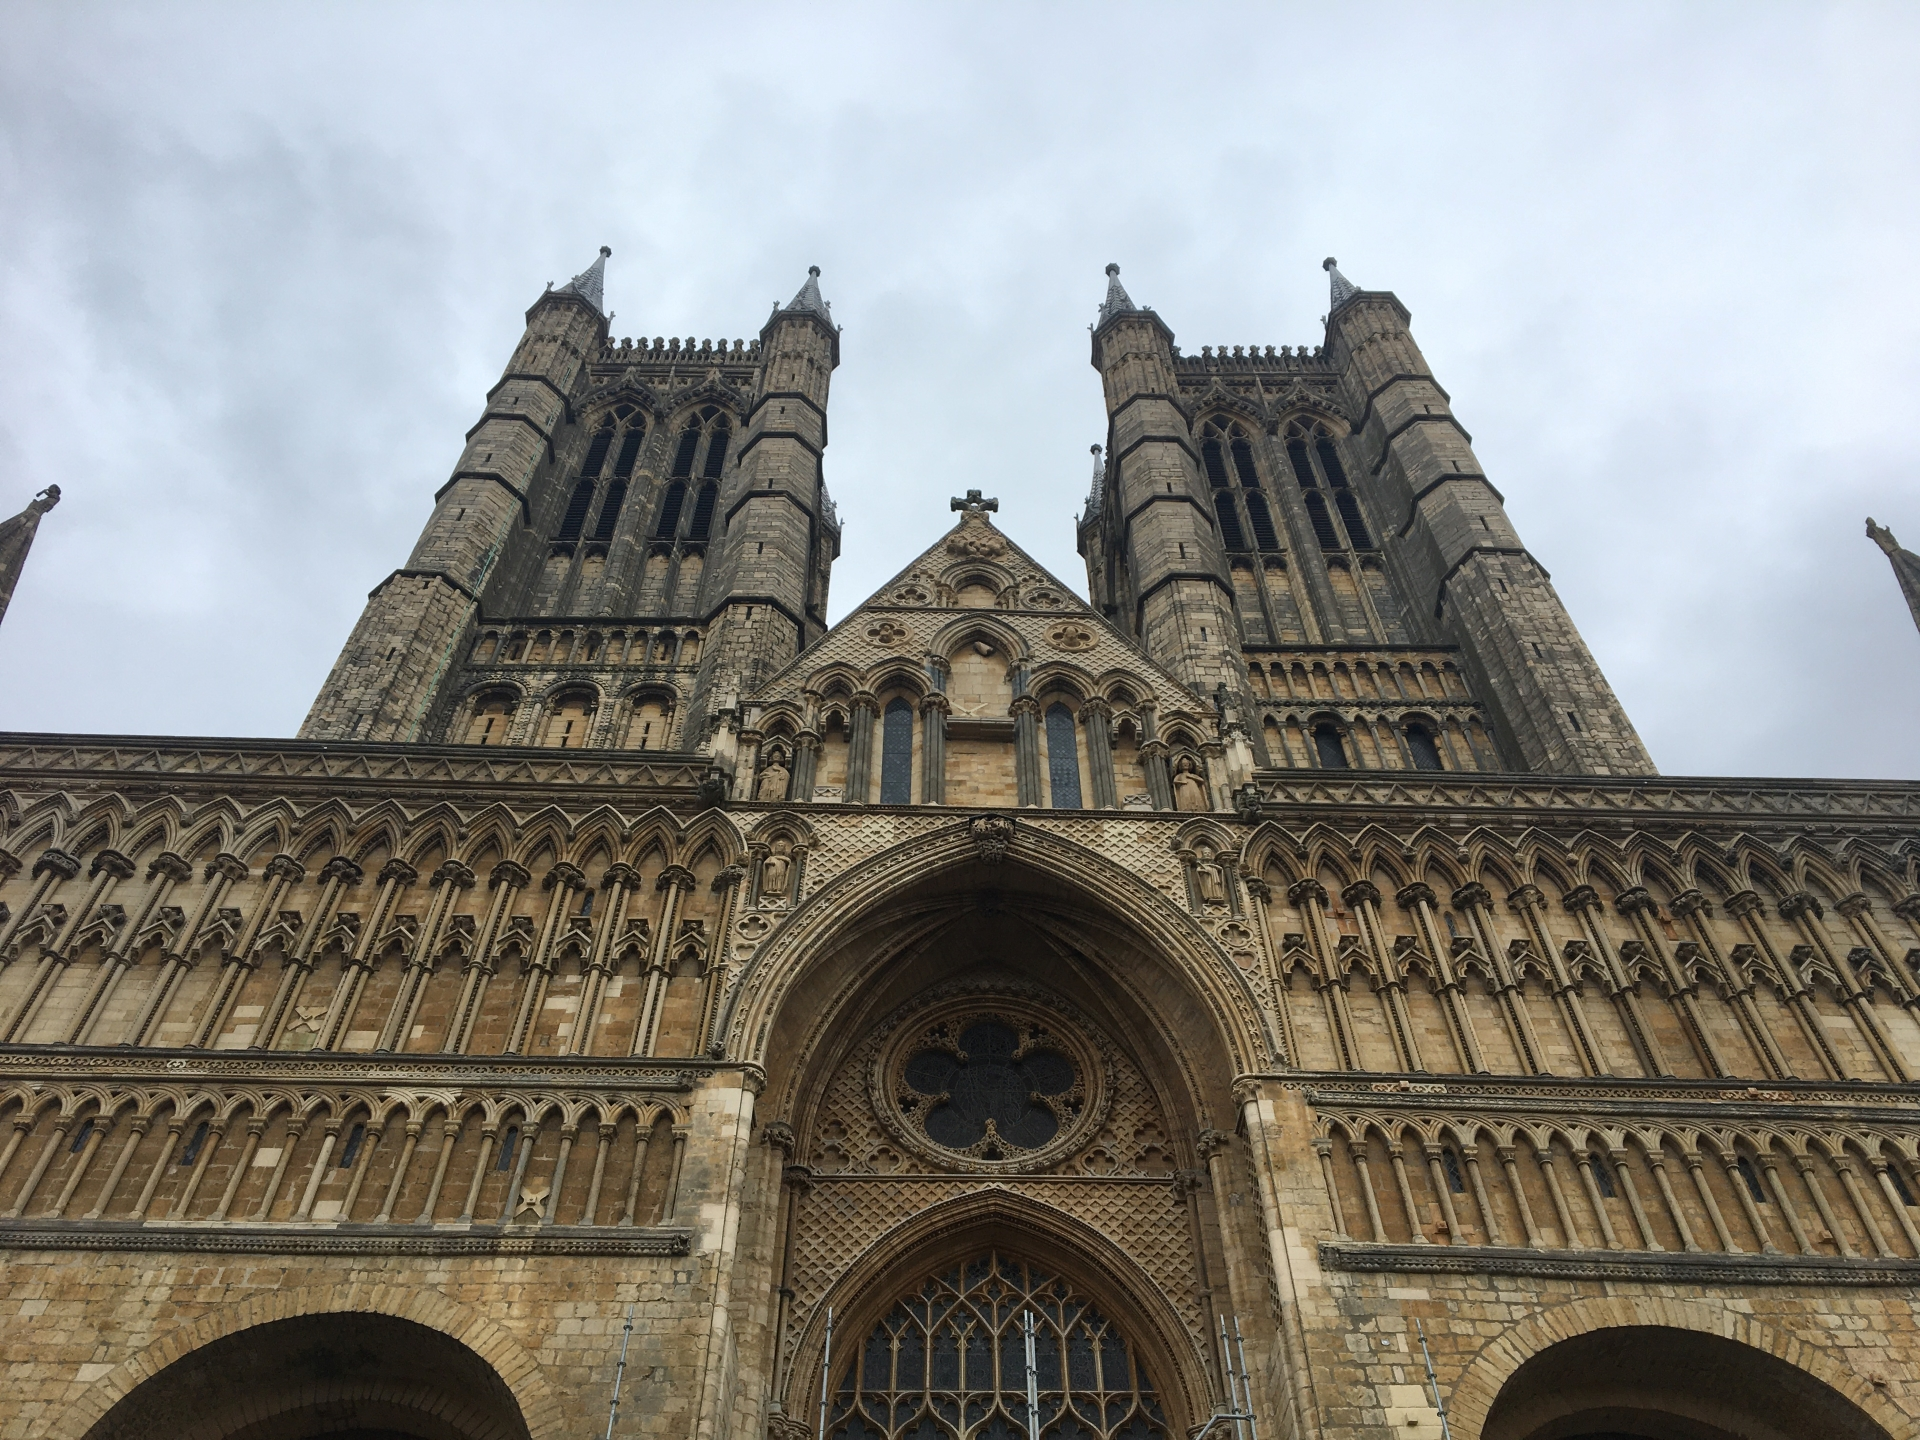 Lincoln Cathedral taken on an iPhone 6S